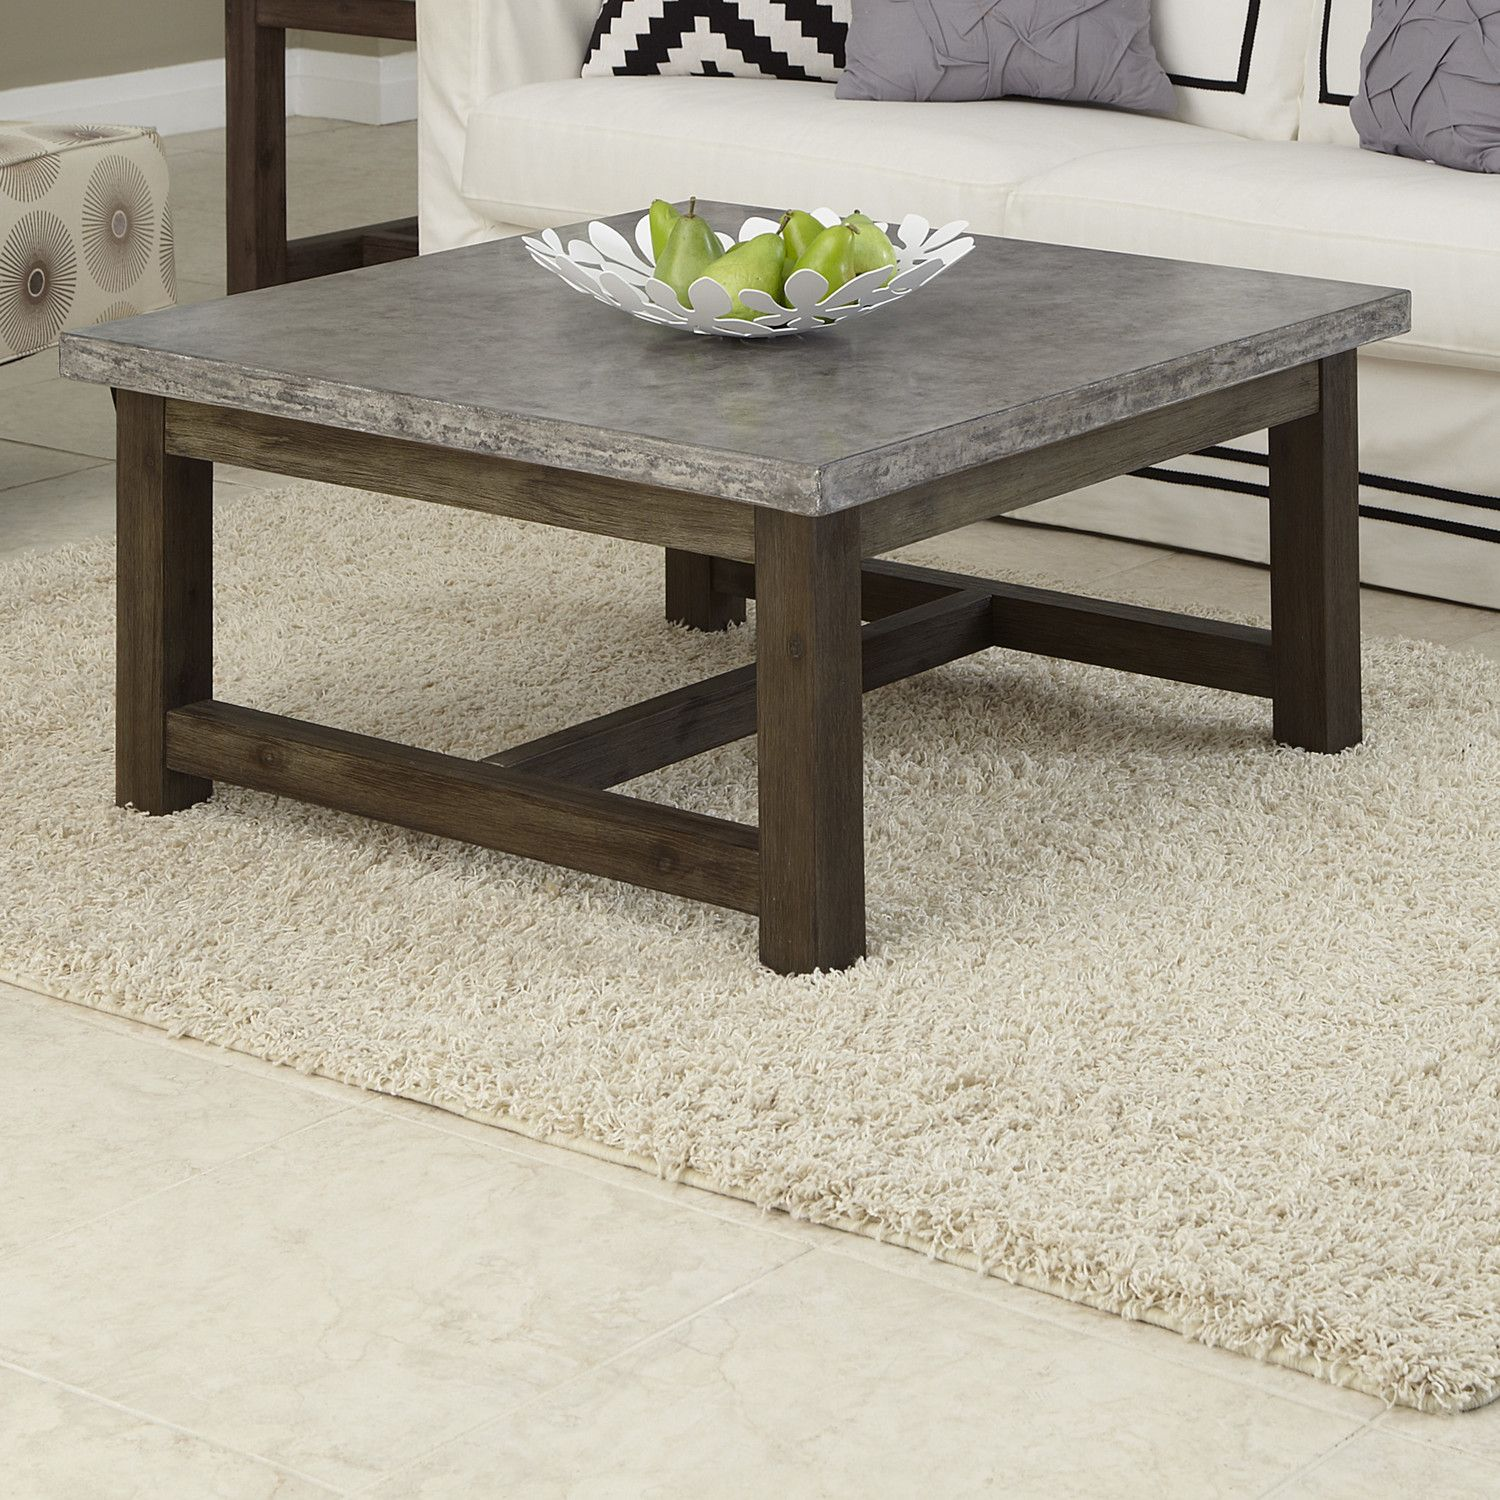 Loon4813 Coffee Table Square Chic Coffee Table Coffee Table [ 1500 x 1500 Pixel ]